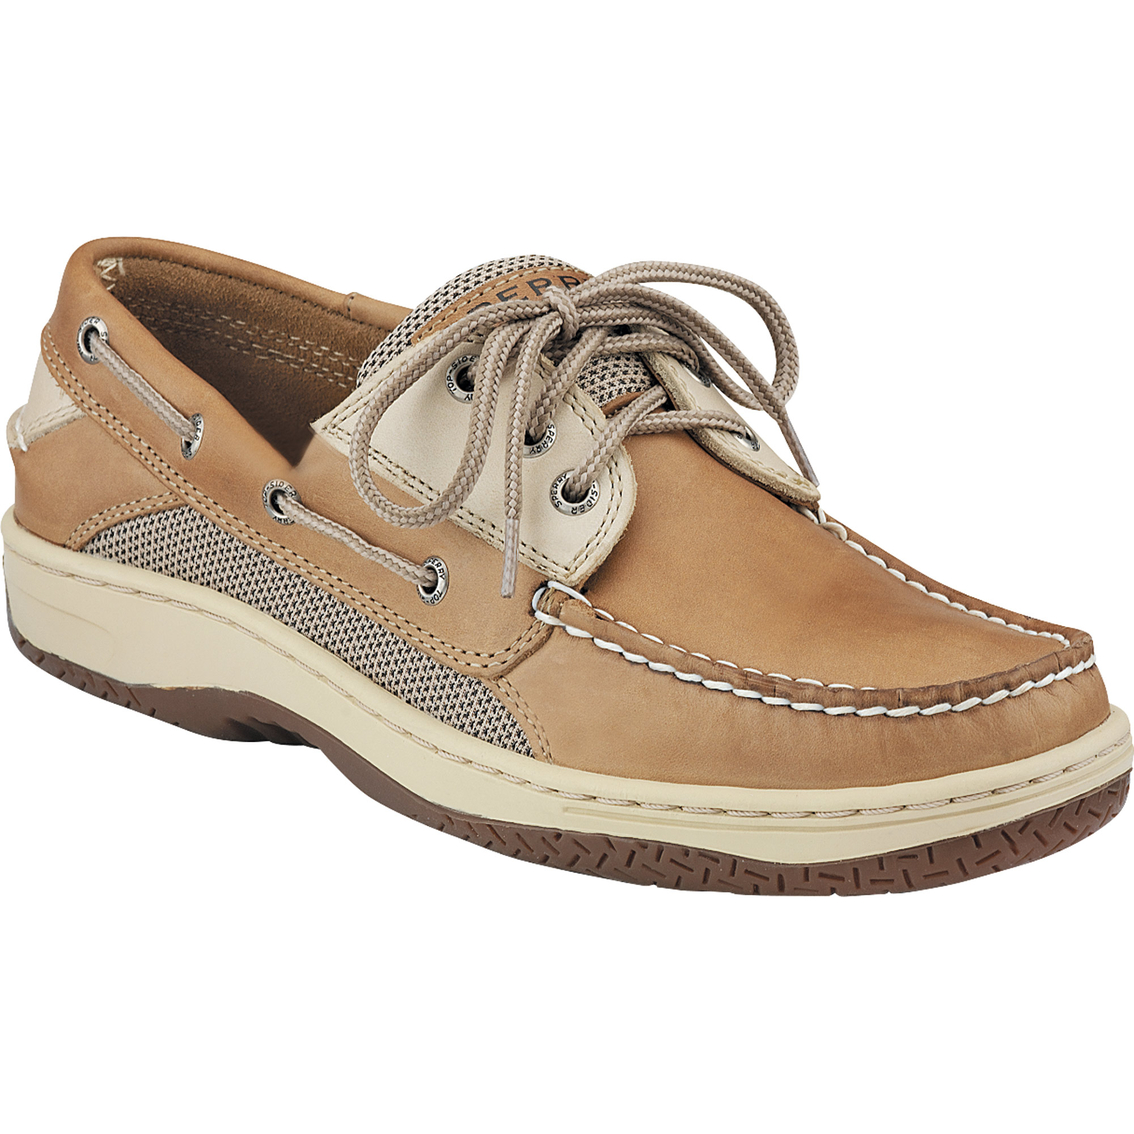 Sperry Top Sider Boys Billfish Boat Shoes